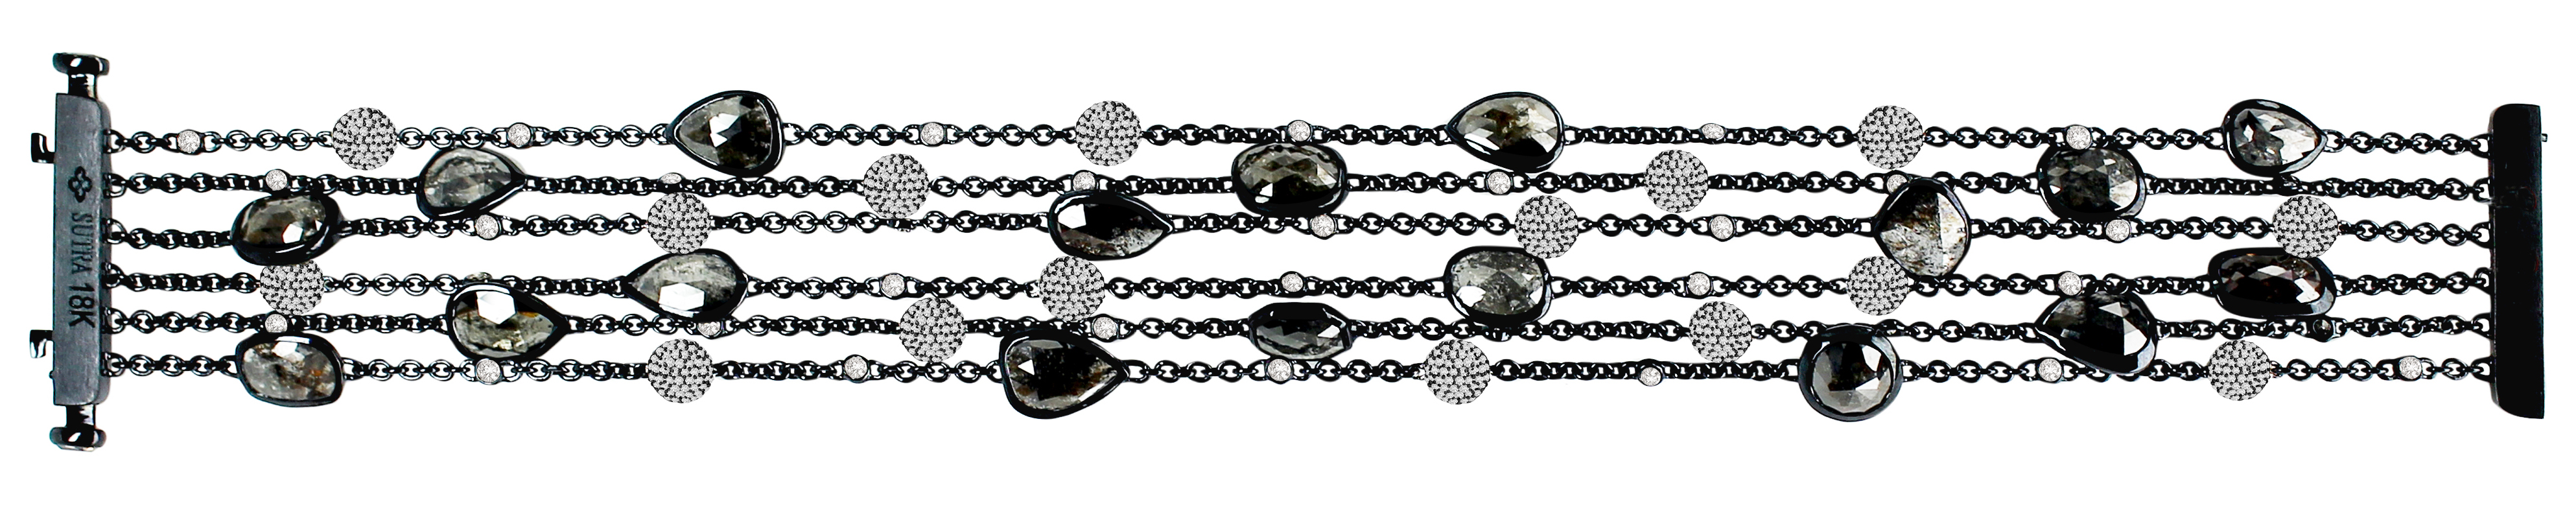 Sutra black diamond bracelet | JCK On Your Market